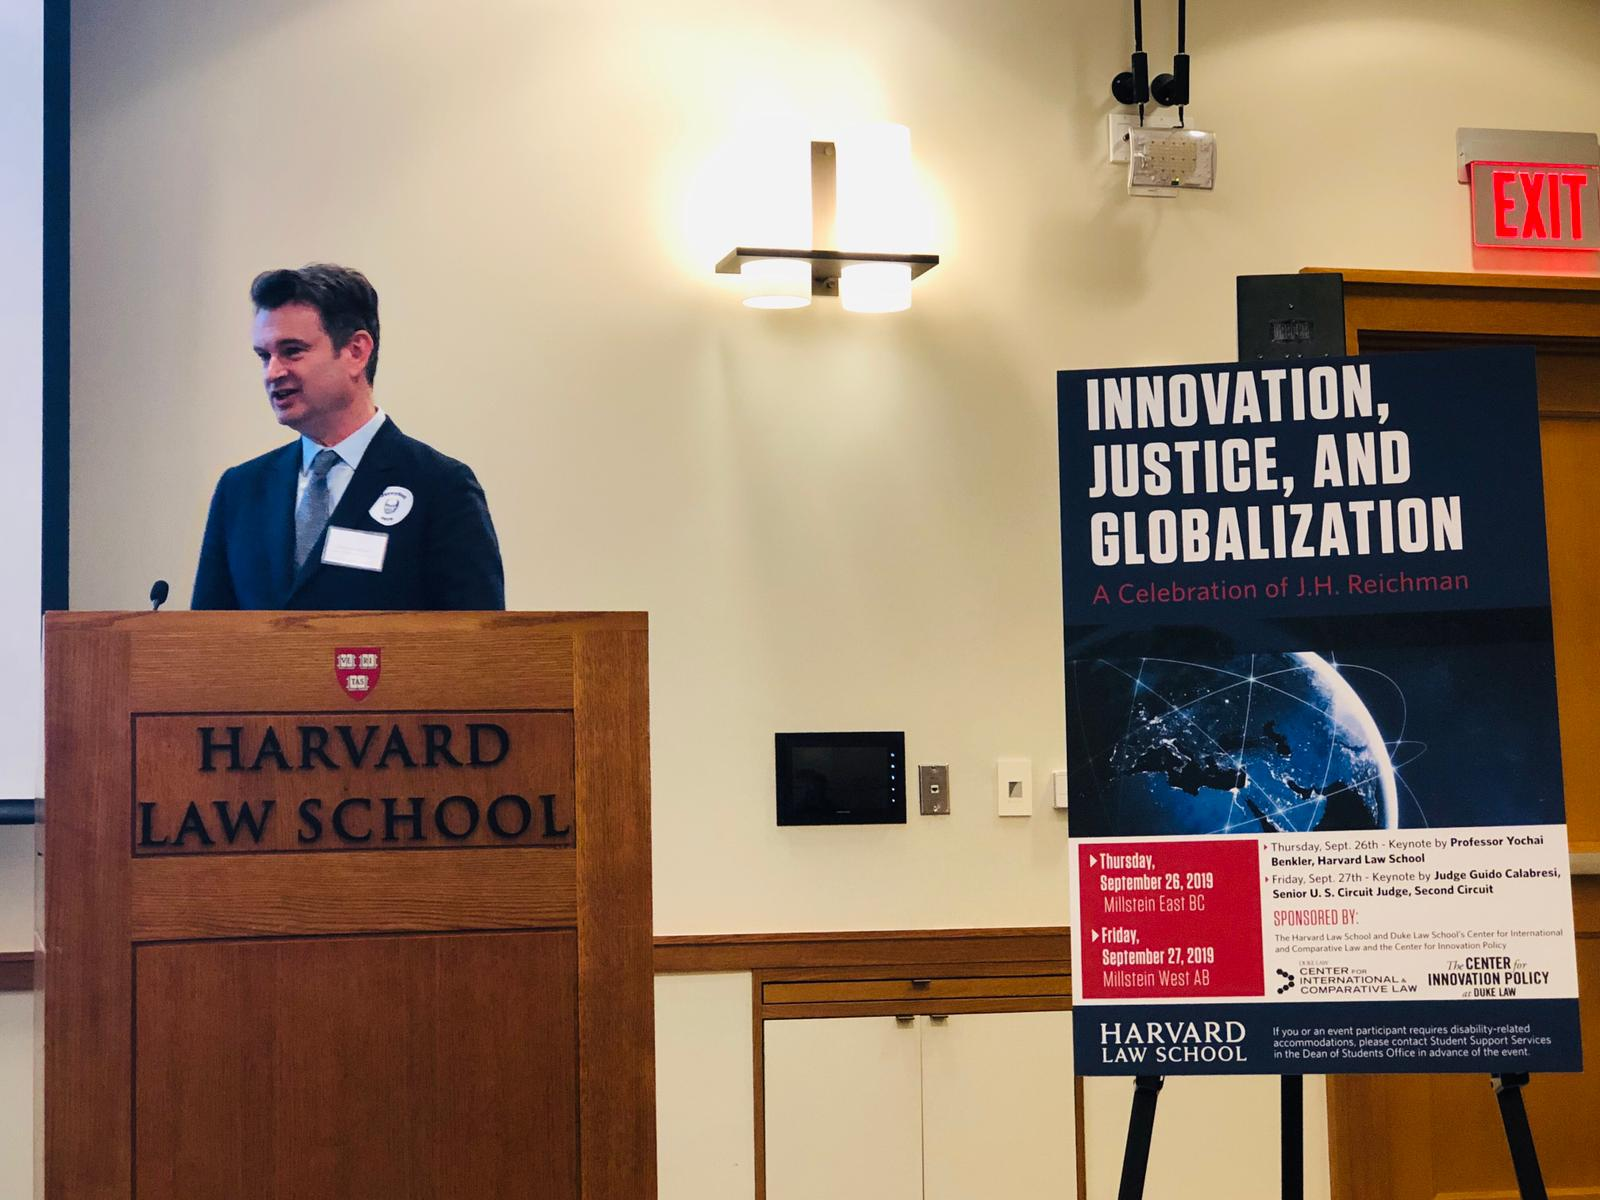 Professor Duncan Matthews speaks at Harvard Law School during the conference in honour of Professor Jerome H. Reichman on 26 September 2019